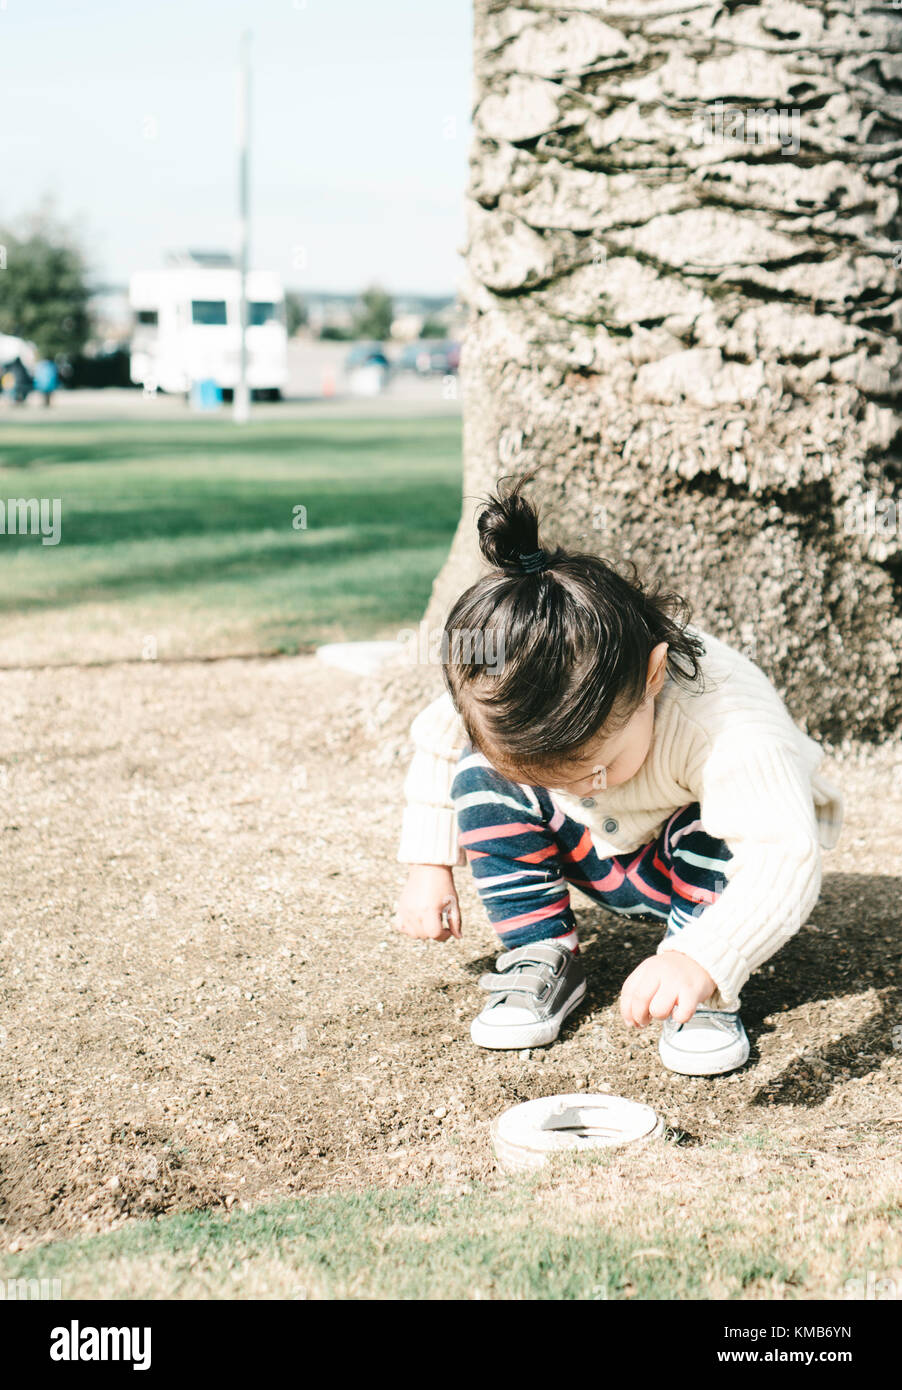 toddler collecting grass into a drain pipe - Stock Image